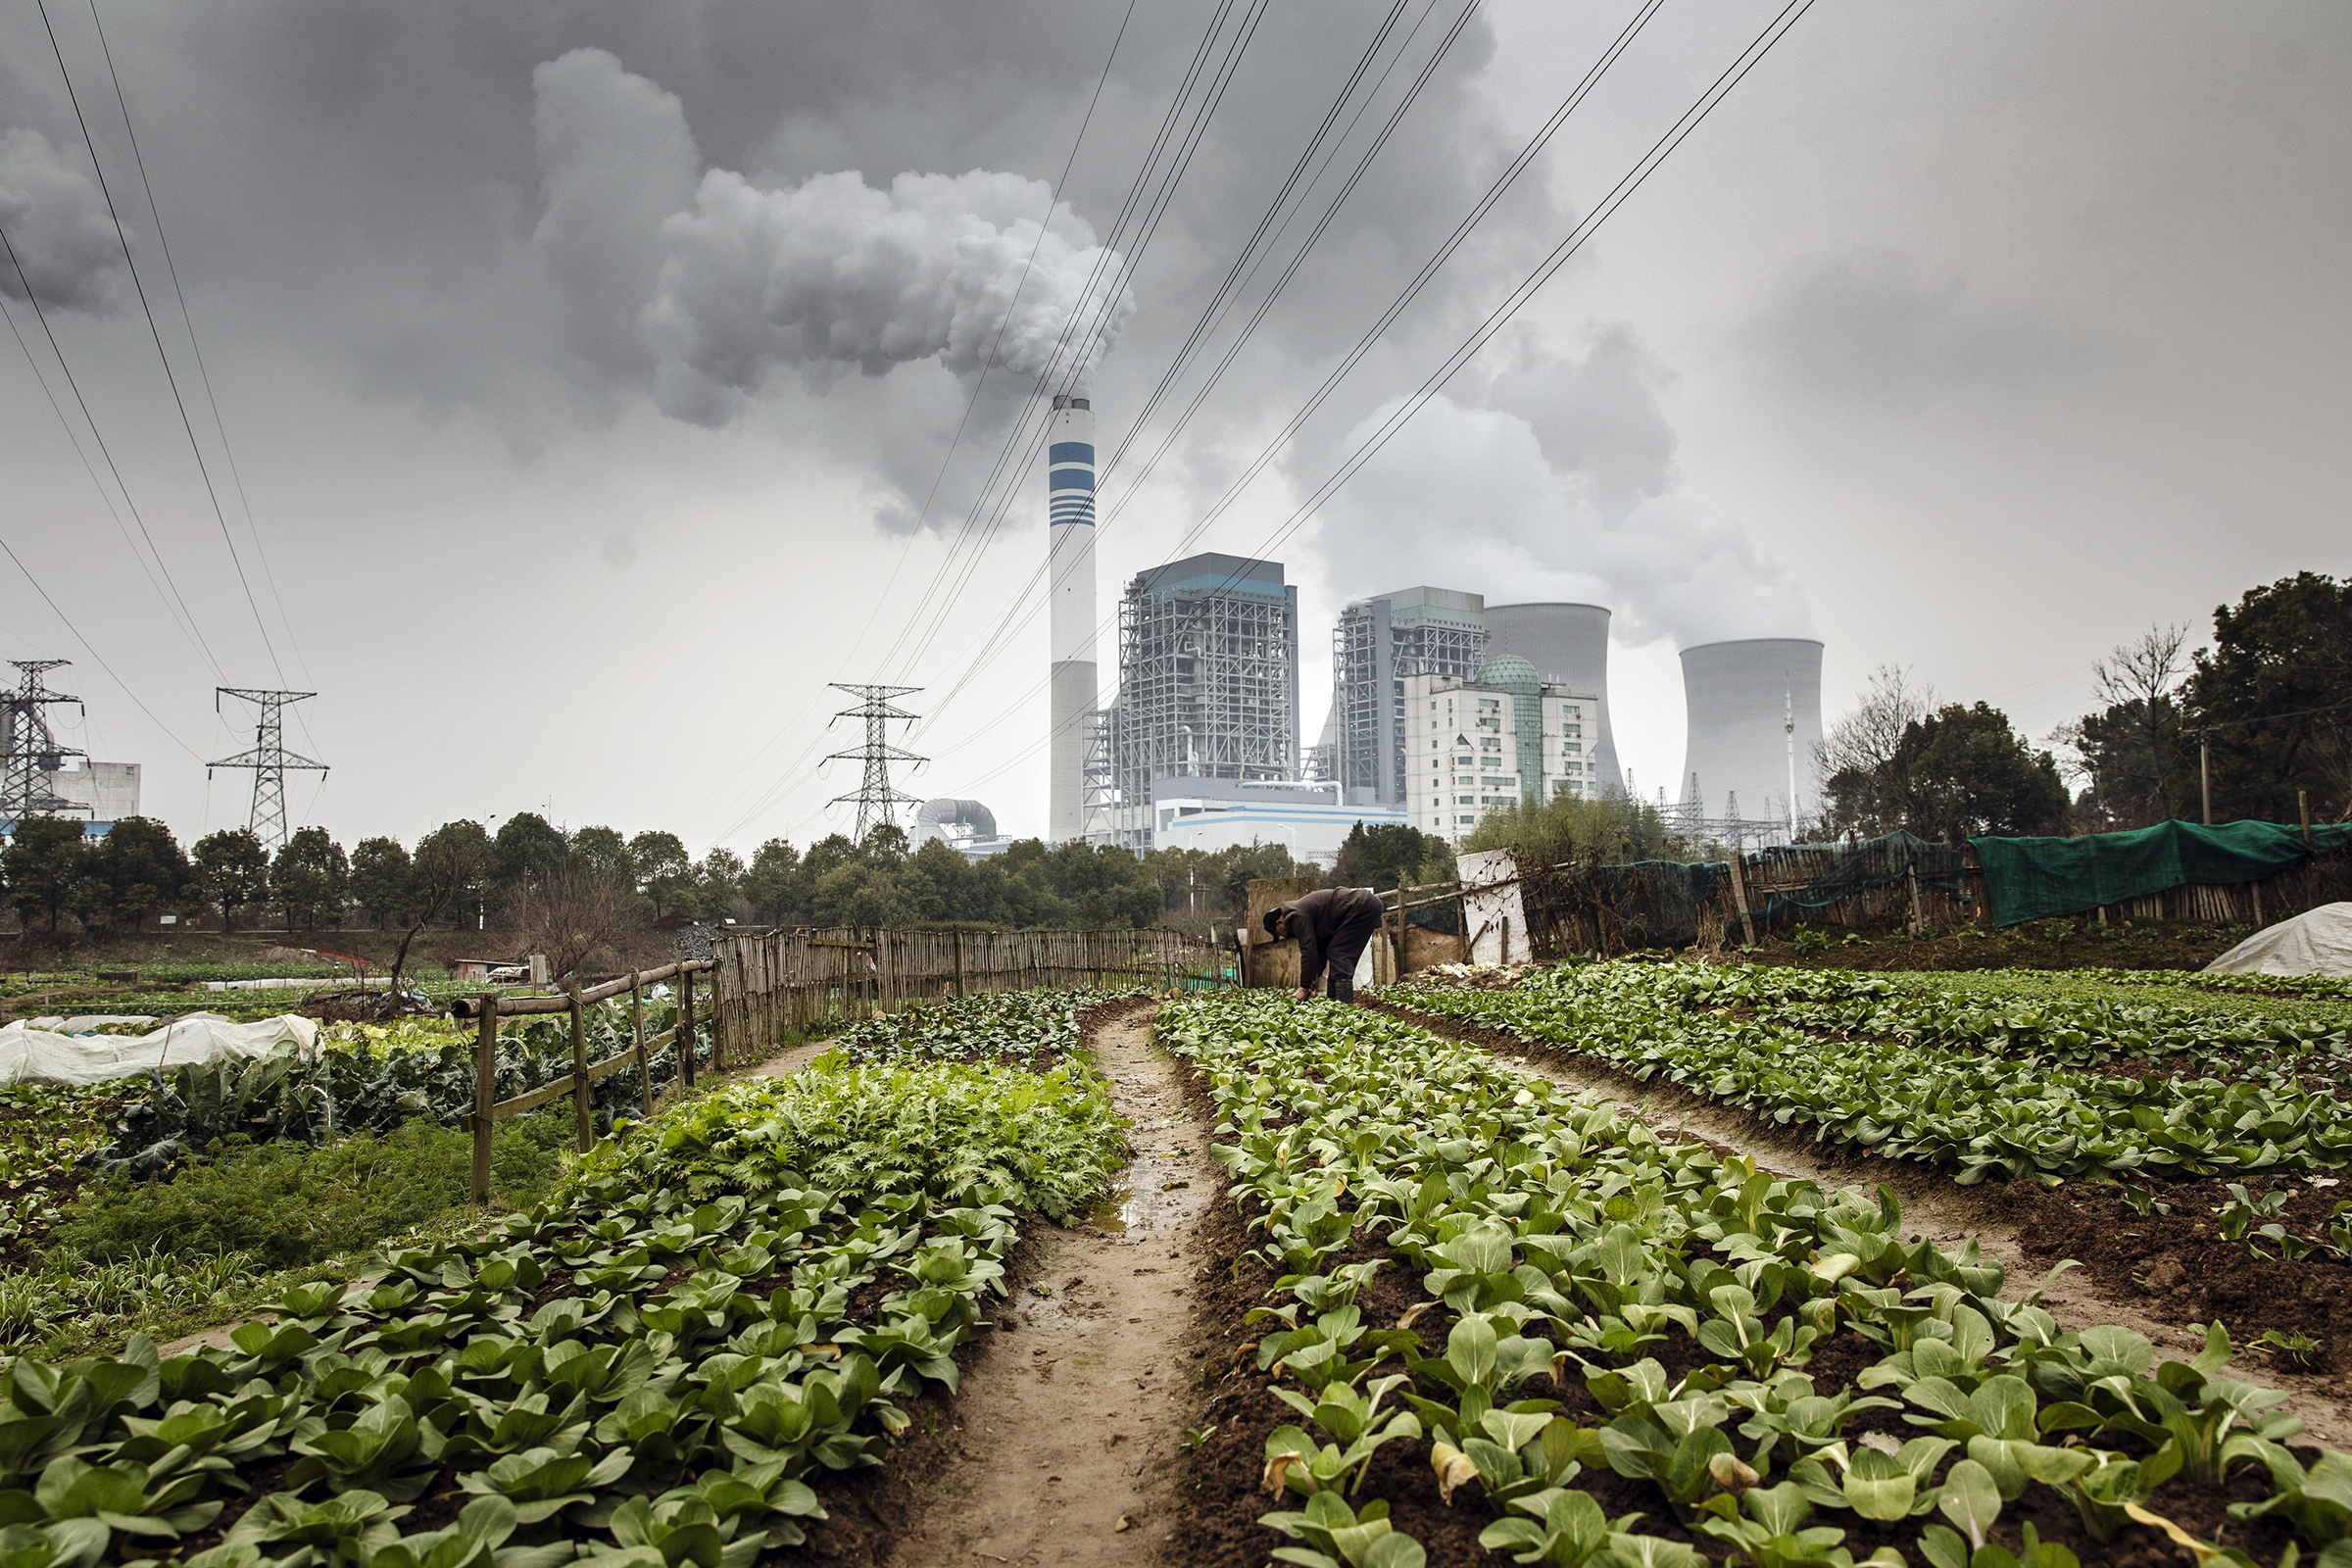 A man tends to vegetables growing in a field as emissions rise from cooling towers at a coal-fired power station in Tongling, Anhui province, China, on Wednesday, Jan. 16, 2019.